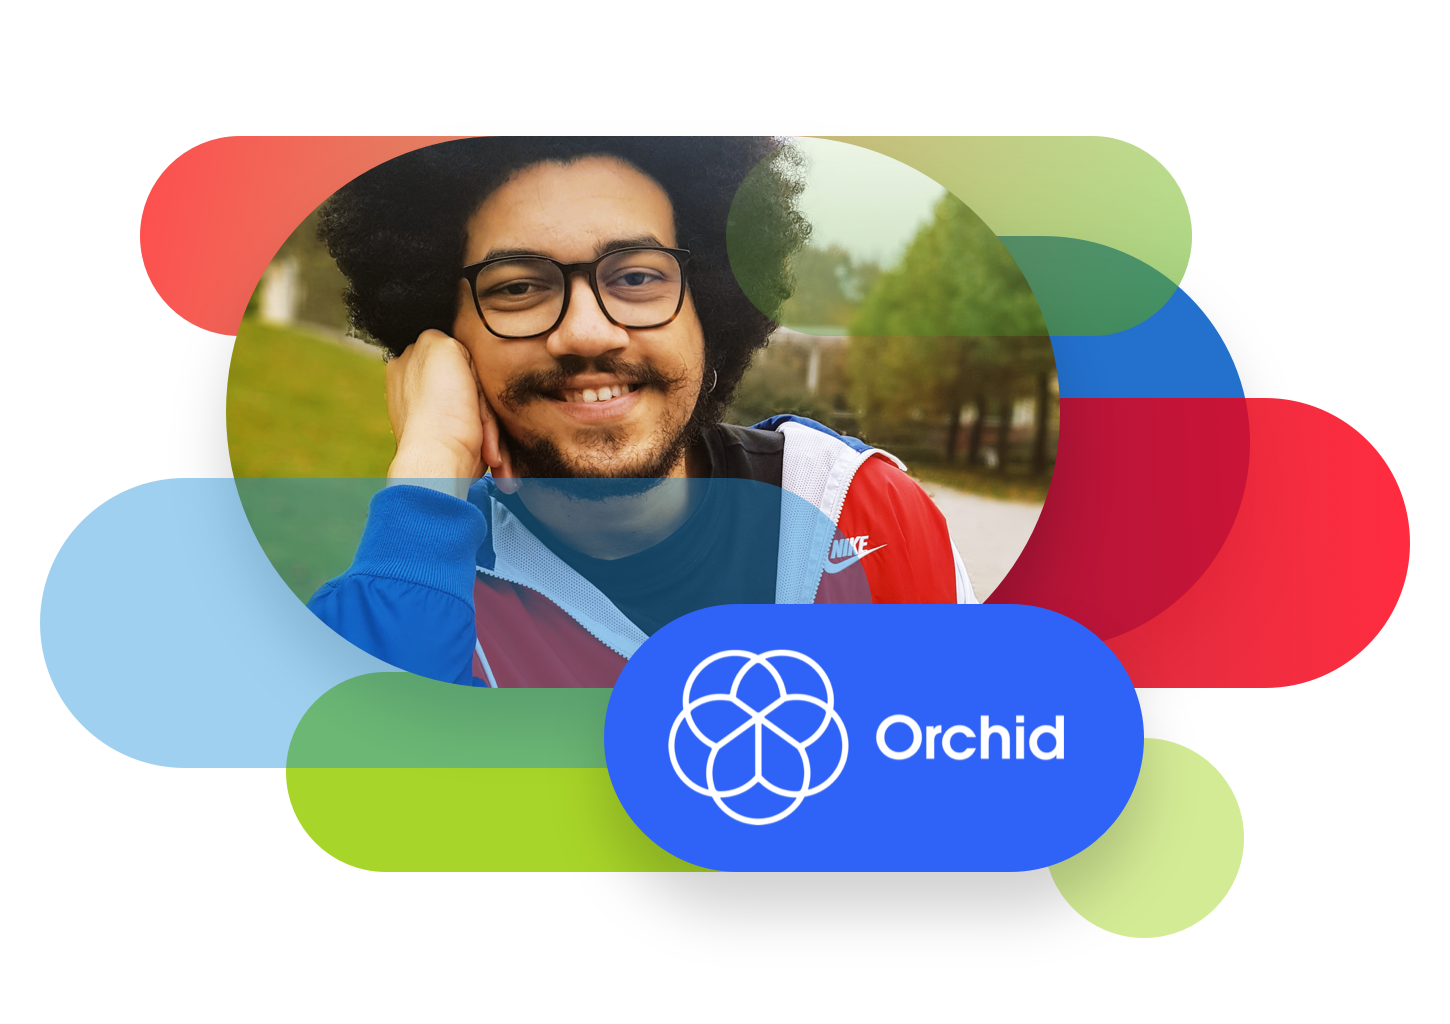 Orchid Creation's Bruno Alberto on 3D Design and Remote Collaboration